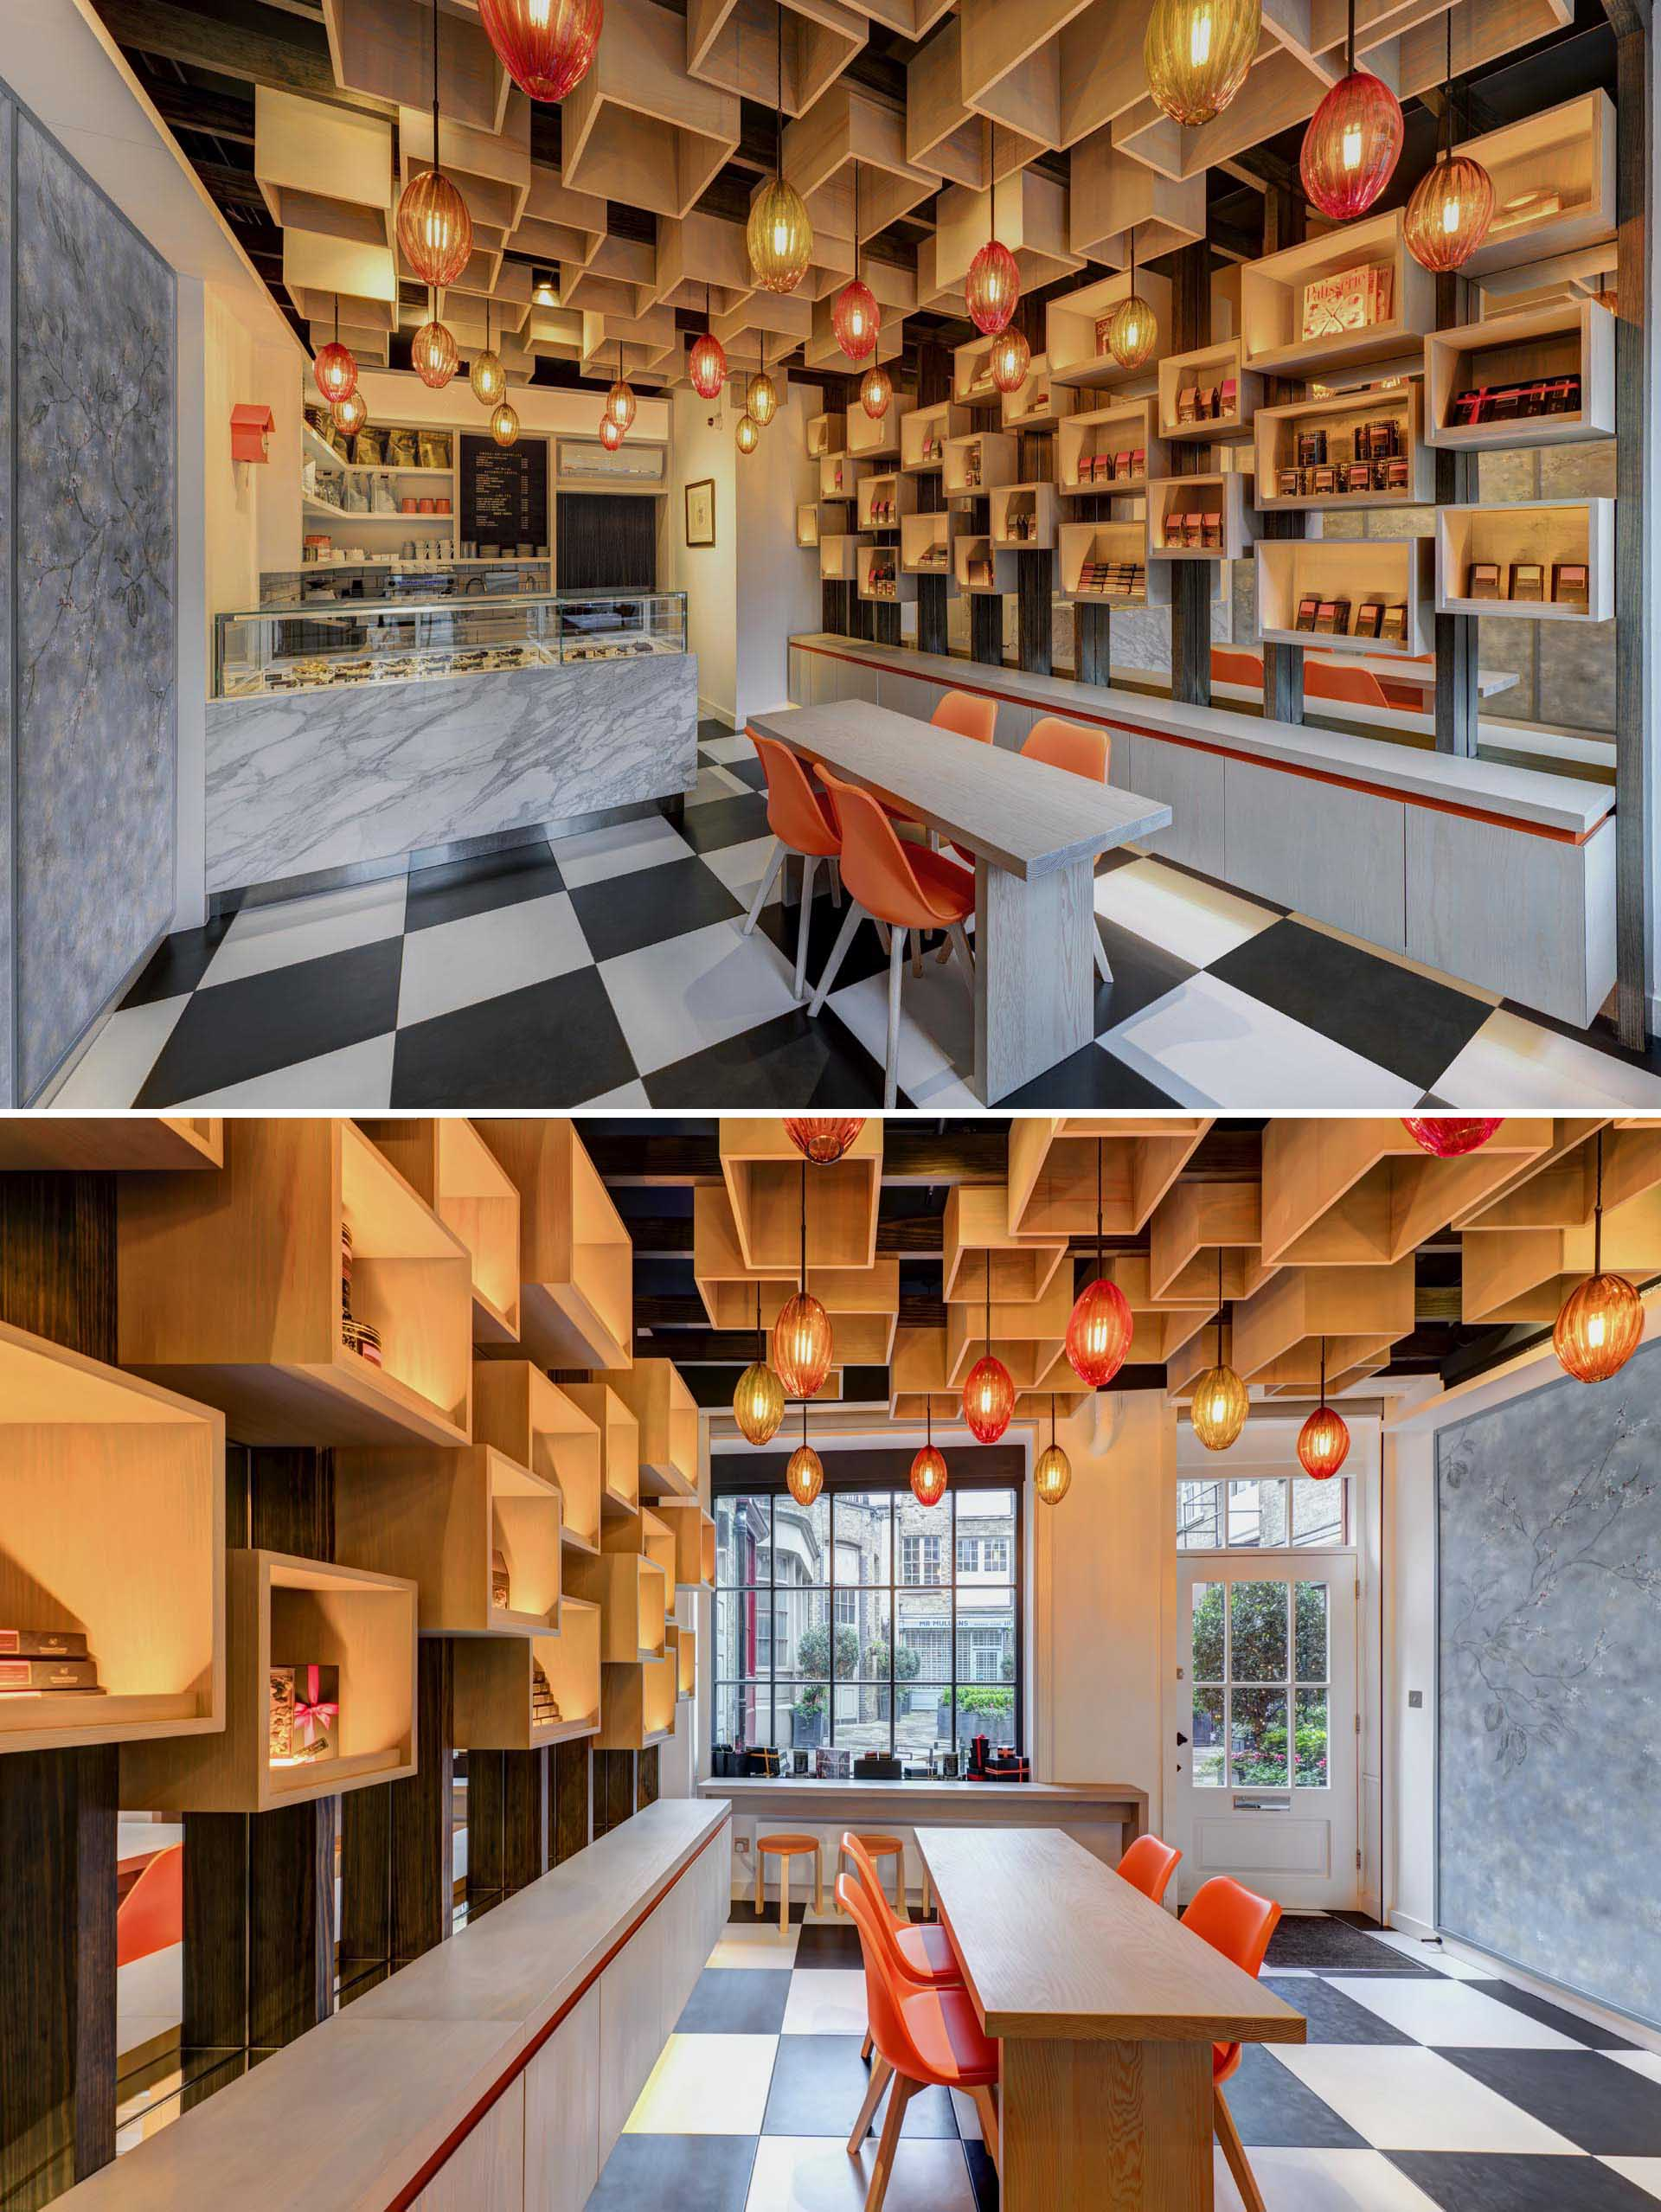 A modern retail store with wood boxes on the wall and ceiling.